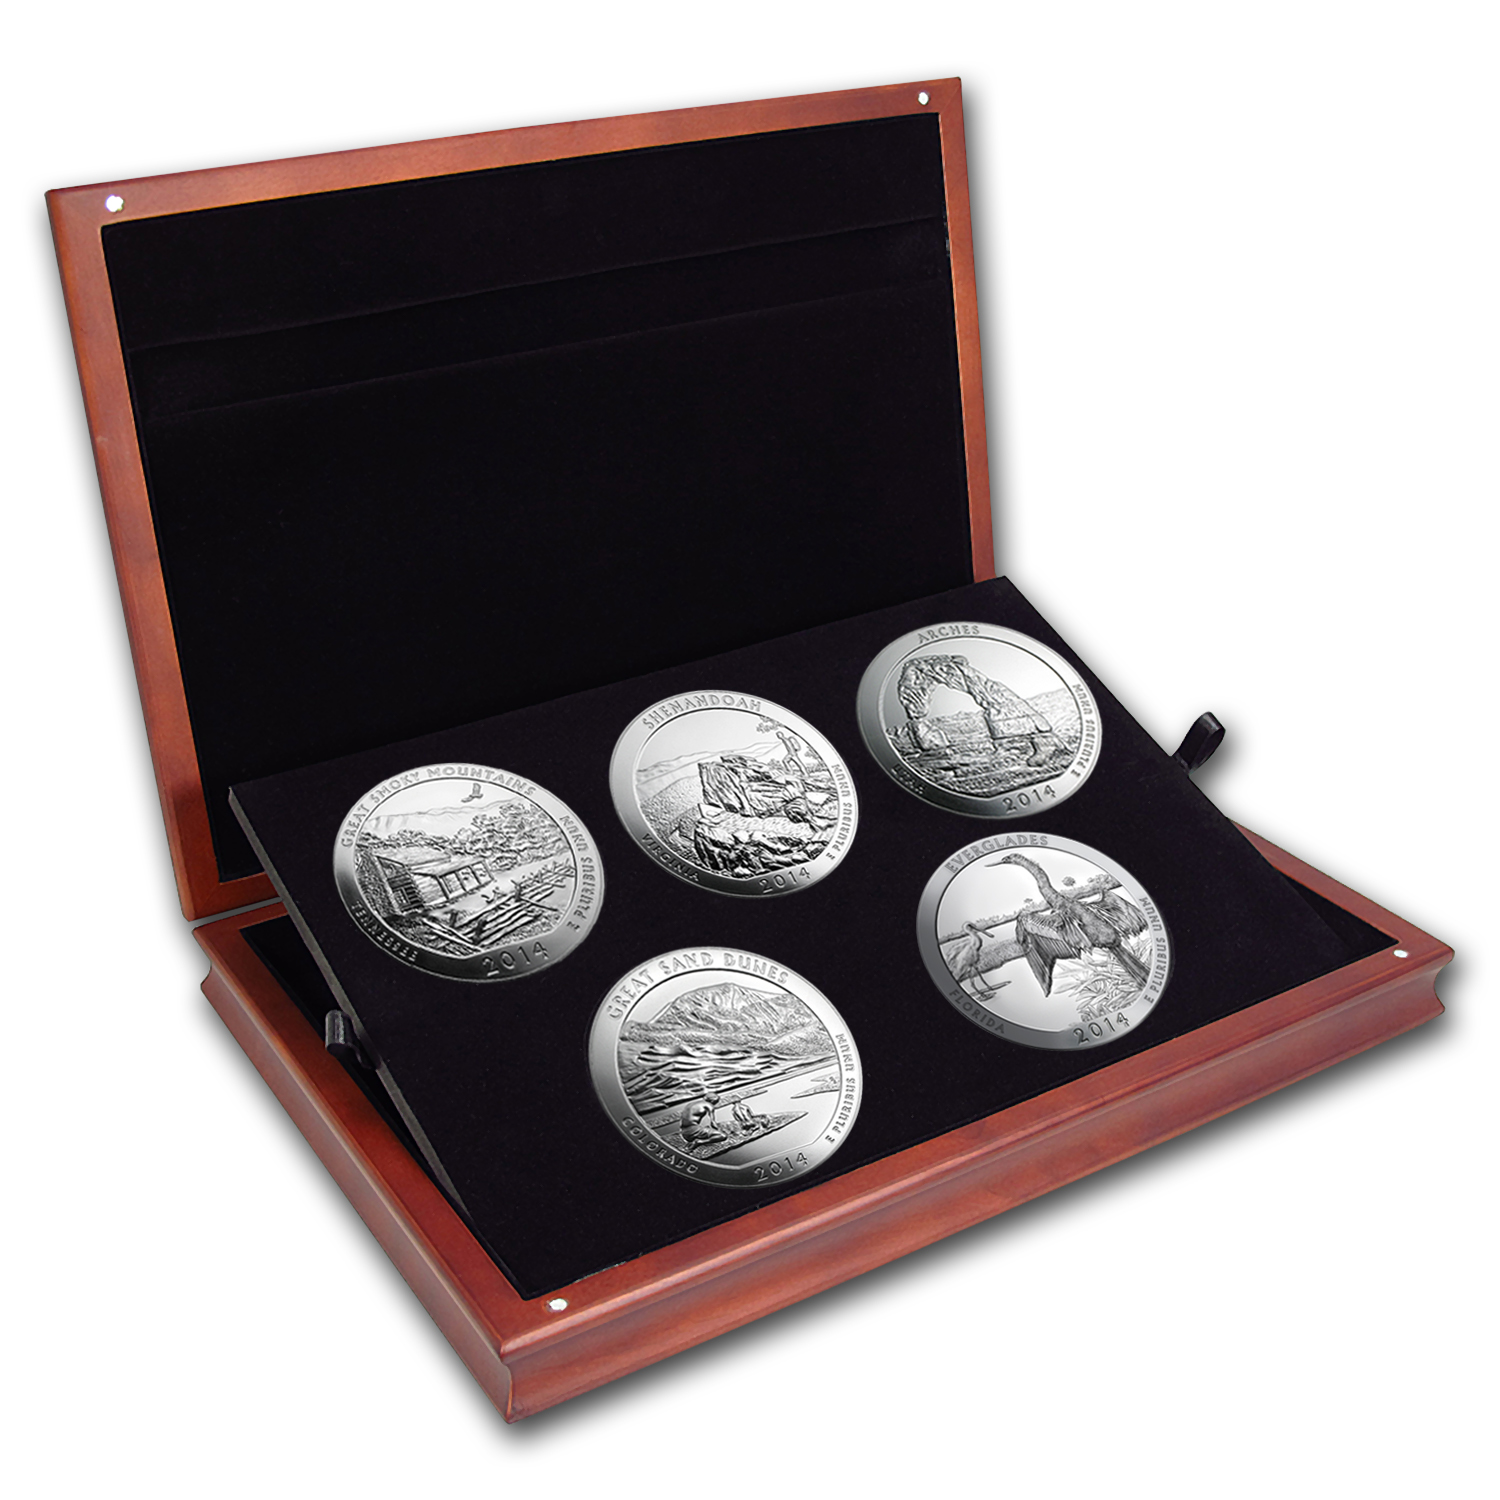 2014 5-Coin 5 oz Silver ATB Set (Elegant Display Box)